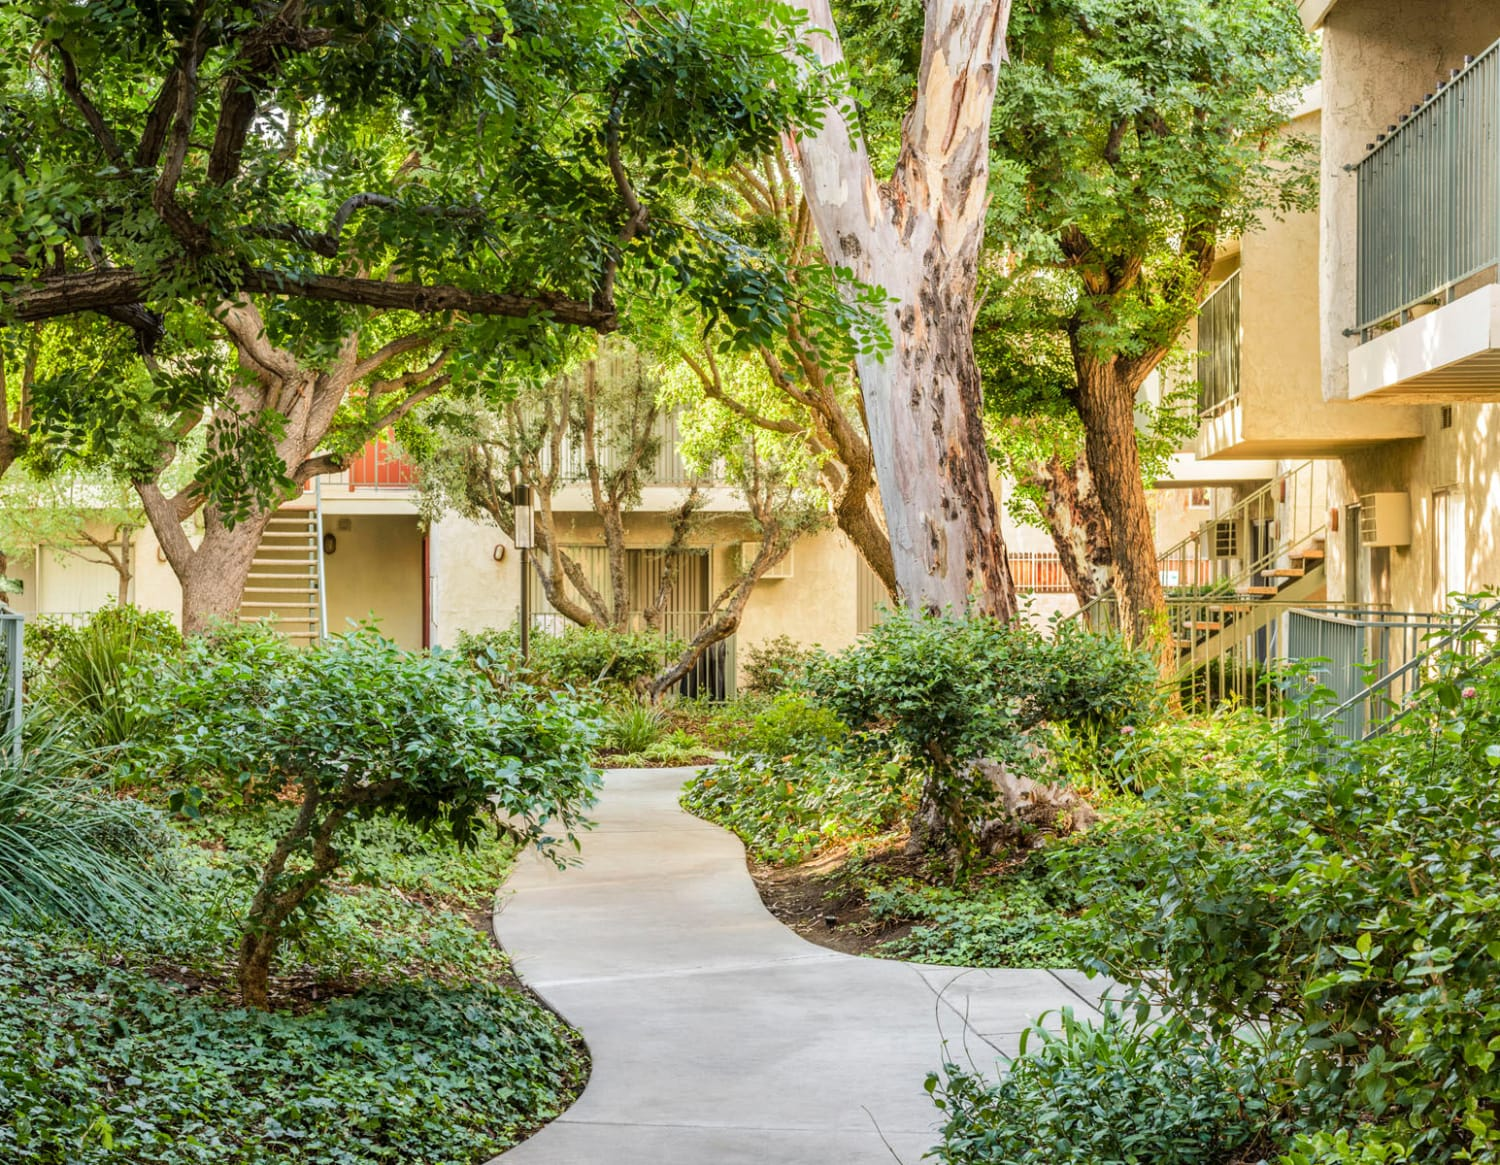 Gorgeously landscaped community at Village Pointe in Northridge, California